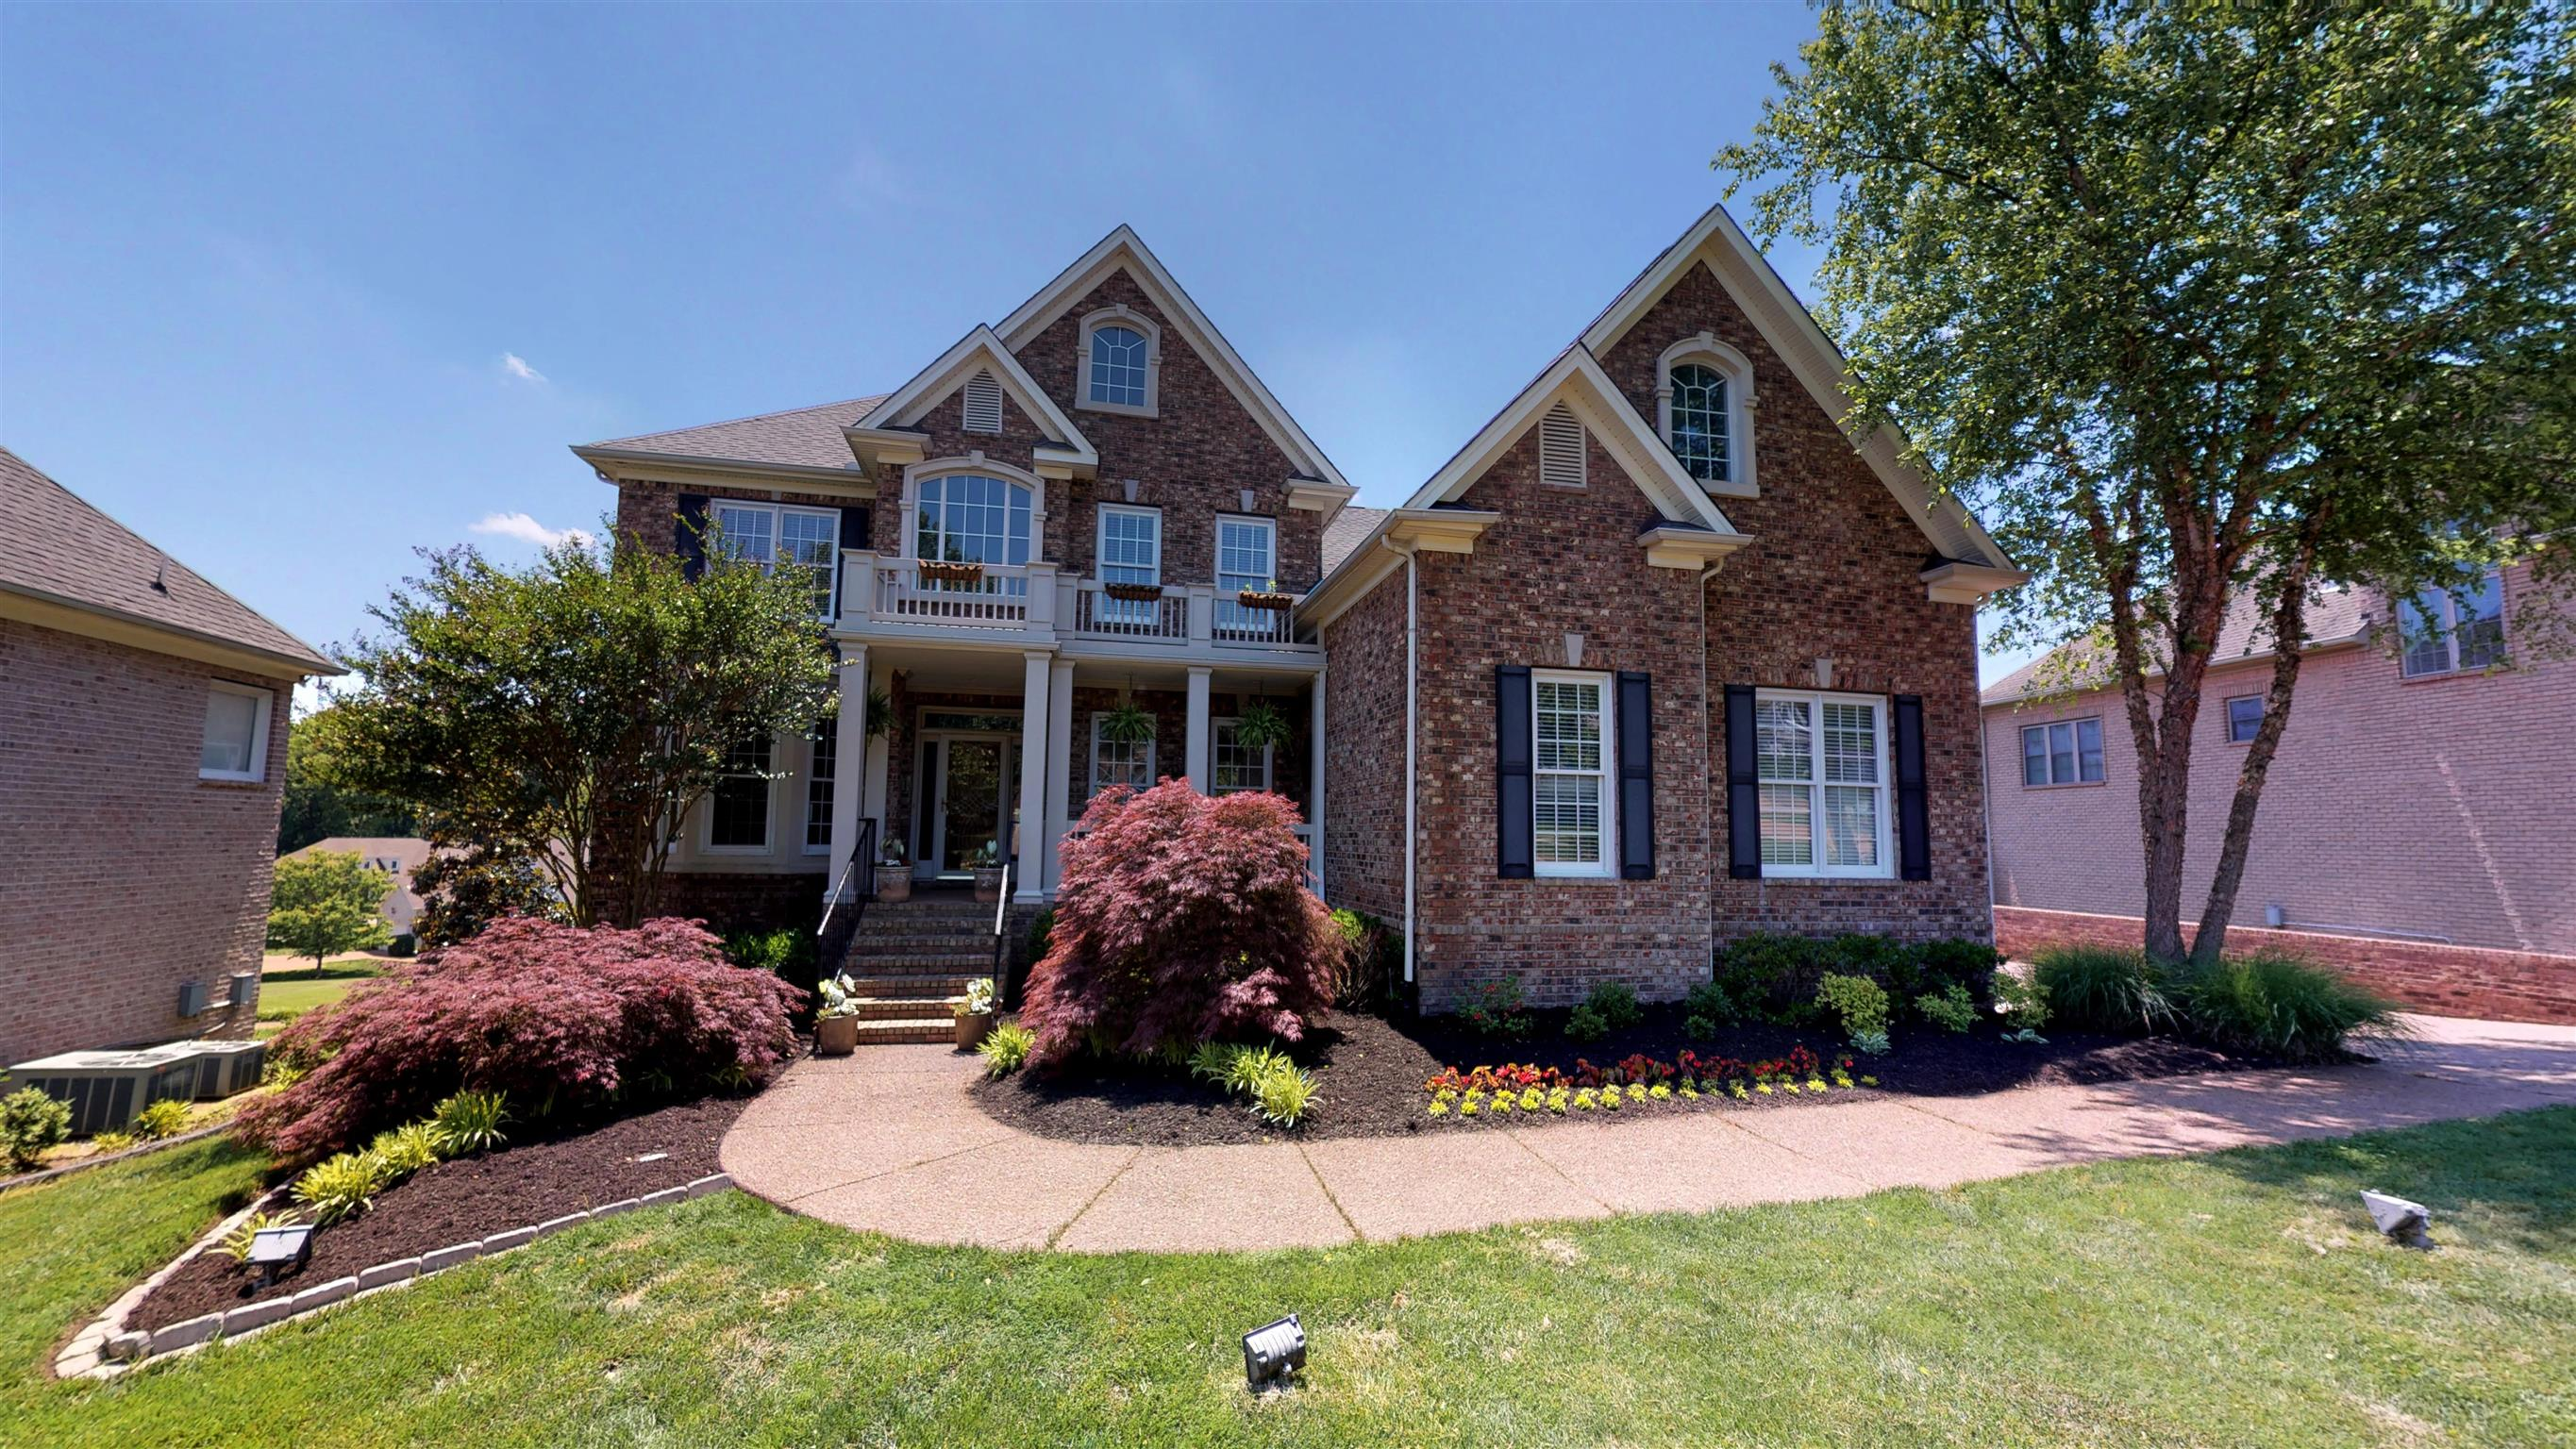 131 12 Stones Xing W, Goodlettsville, TN 37072 - Goodlettsville, TN real estate listing